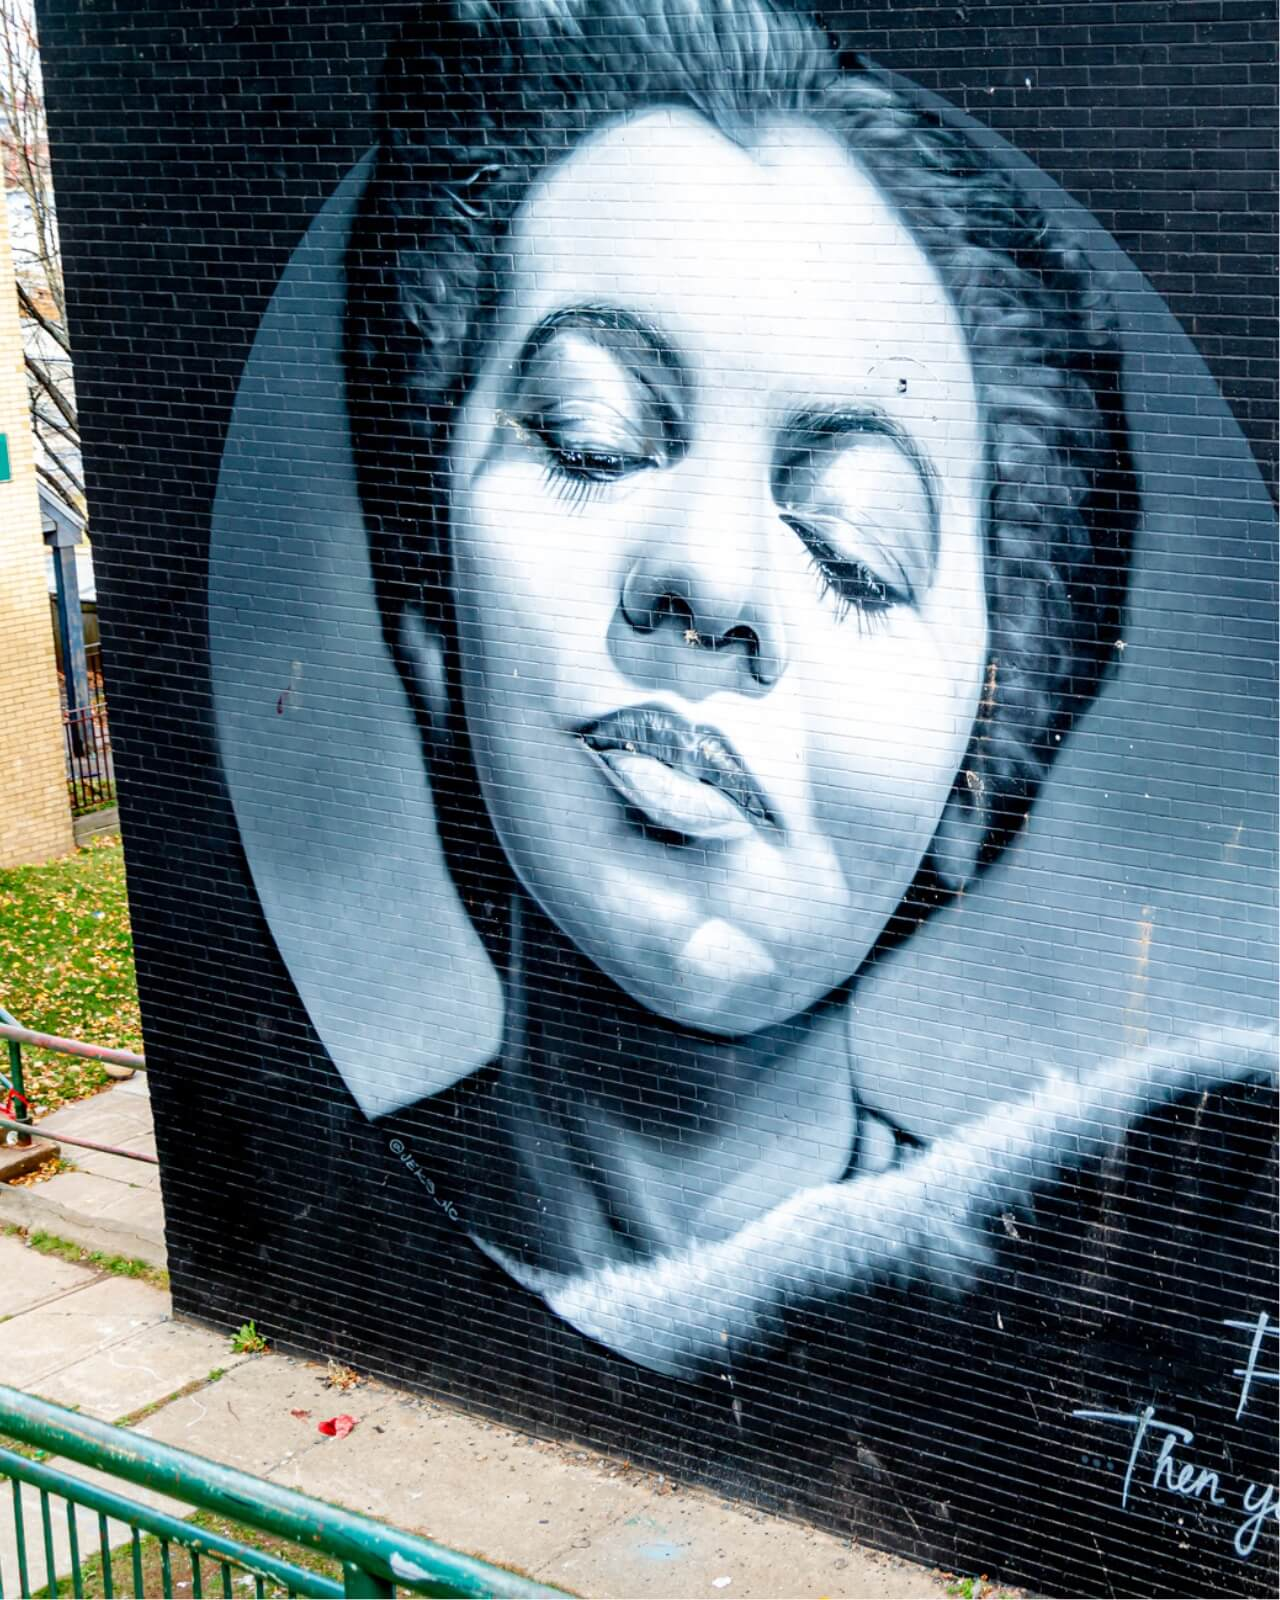 Mural of a lady on the side of a building.